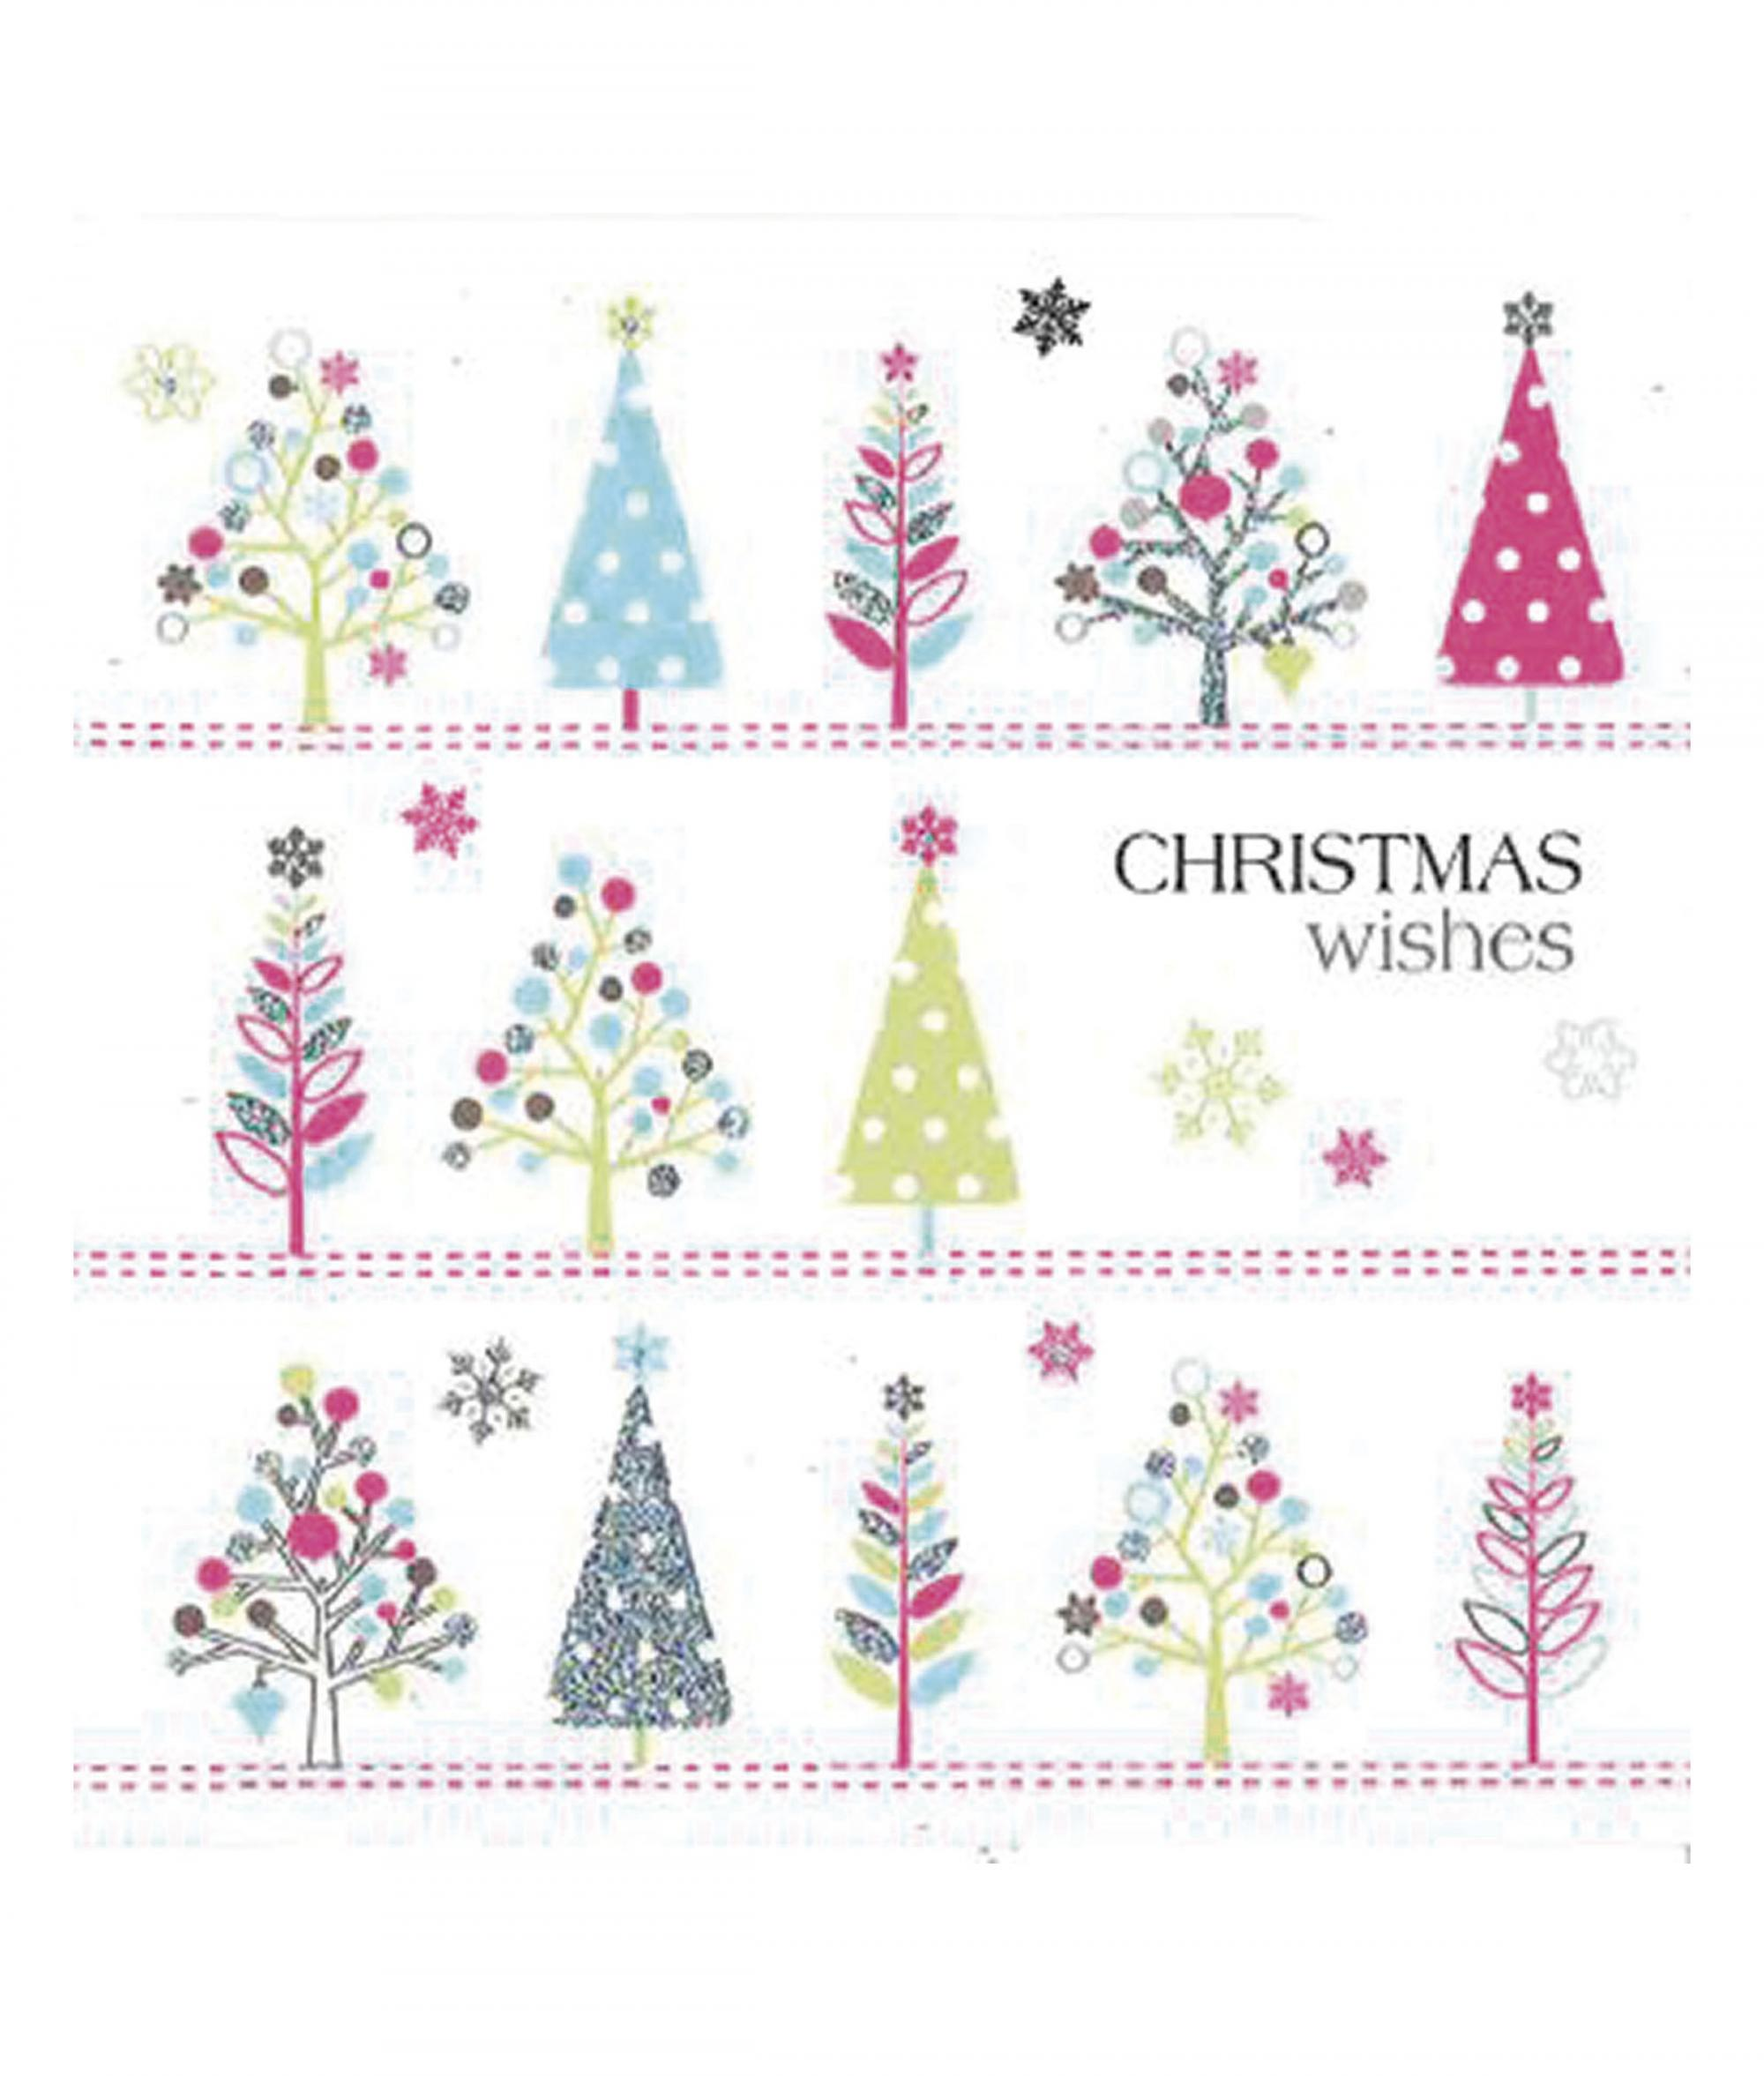 Tiny Trees Christmas Card - Pack of 10 | Cancer Research UK Online Shop